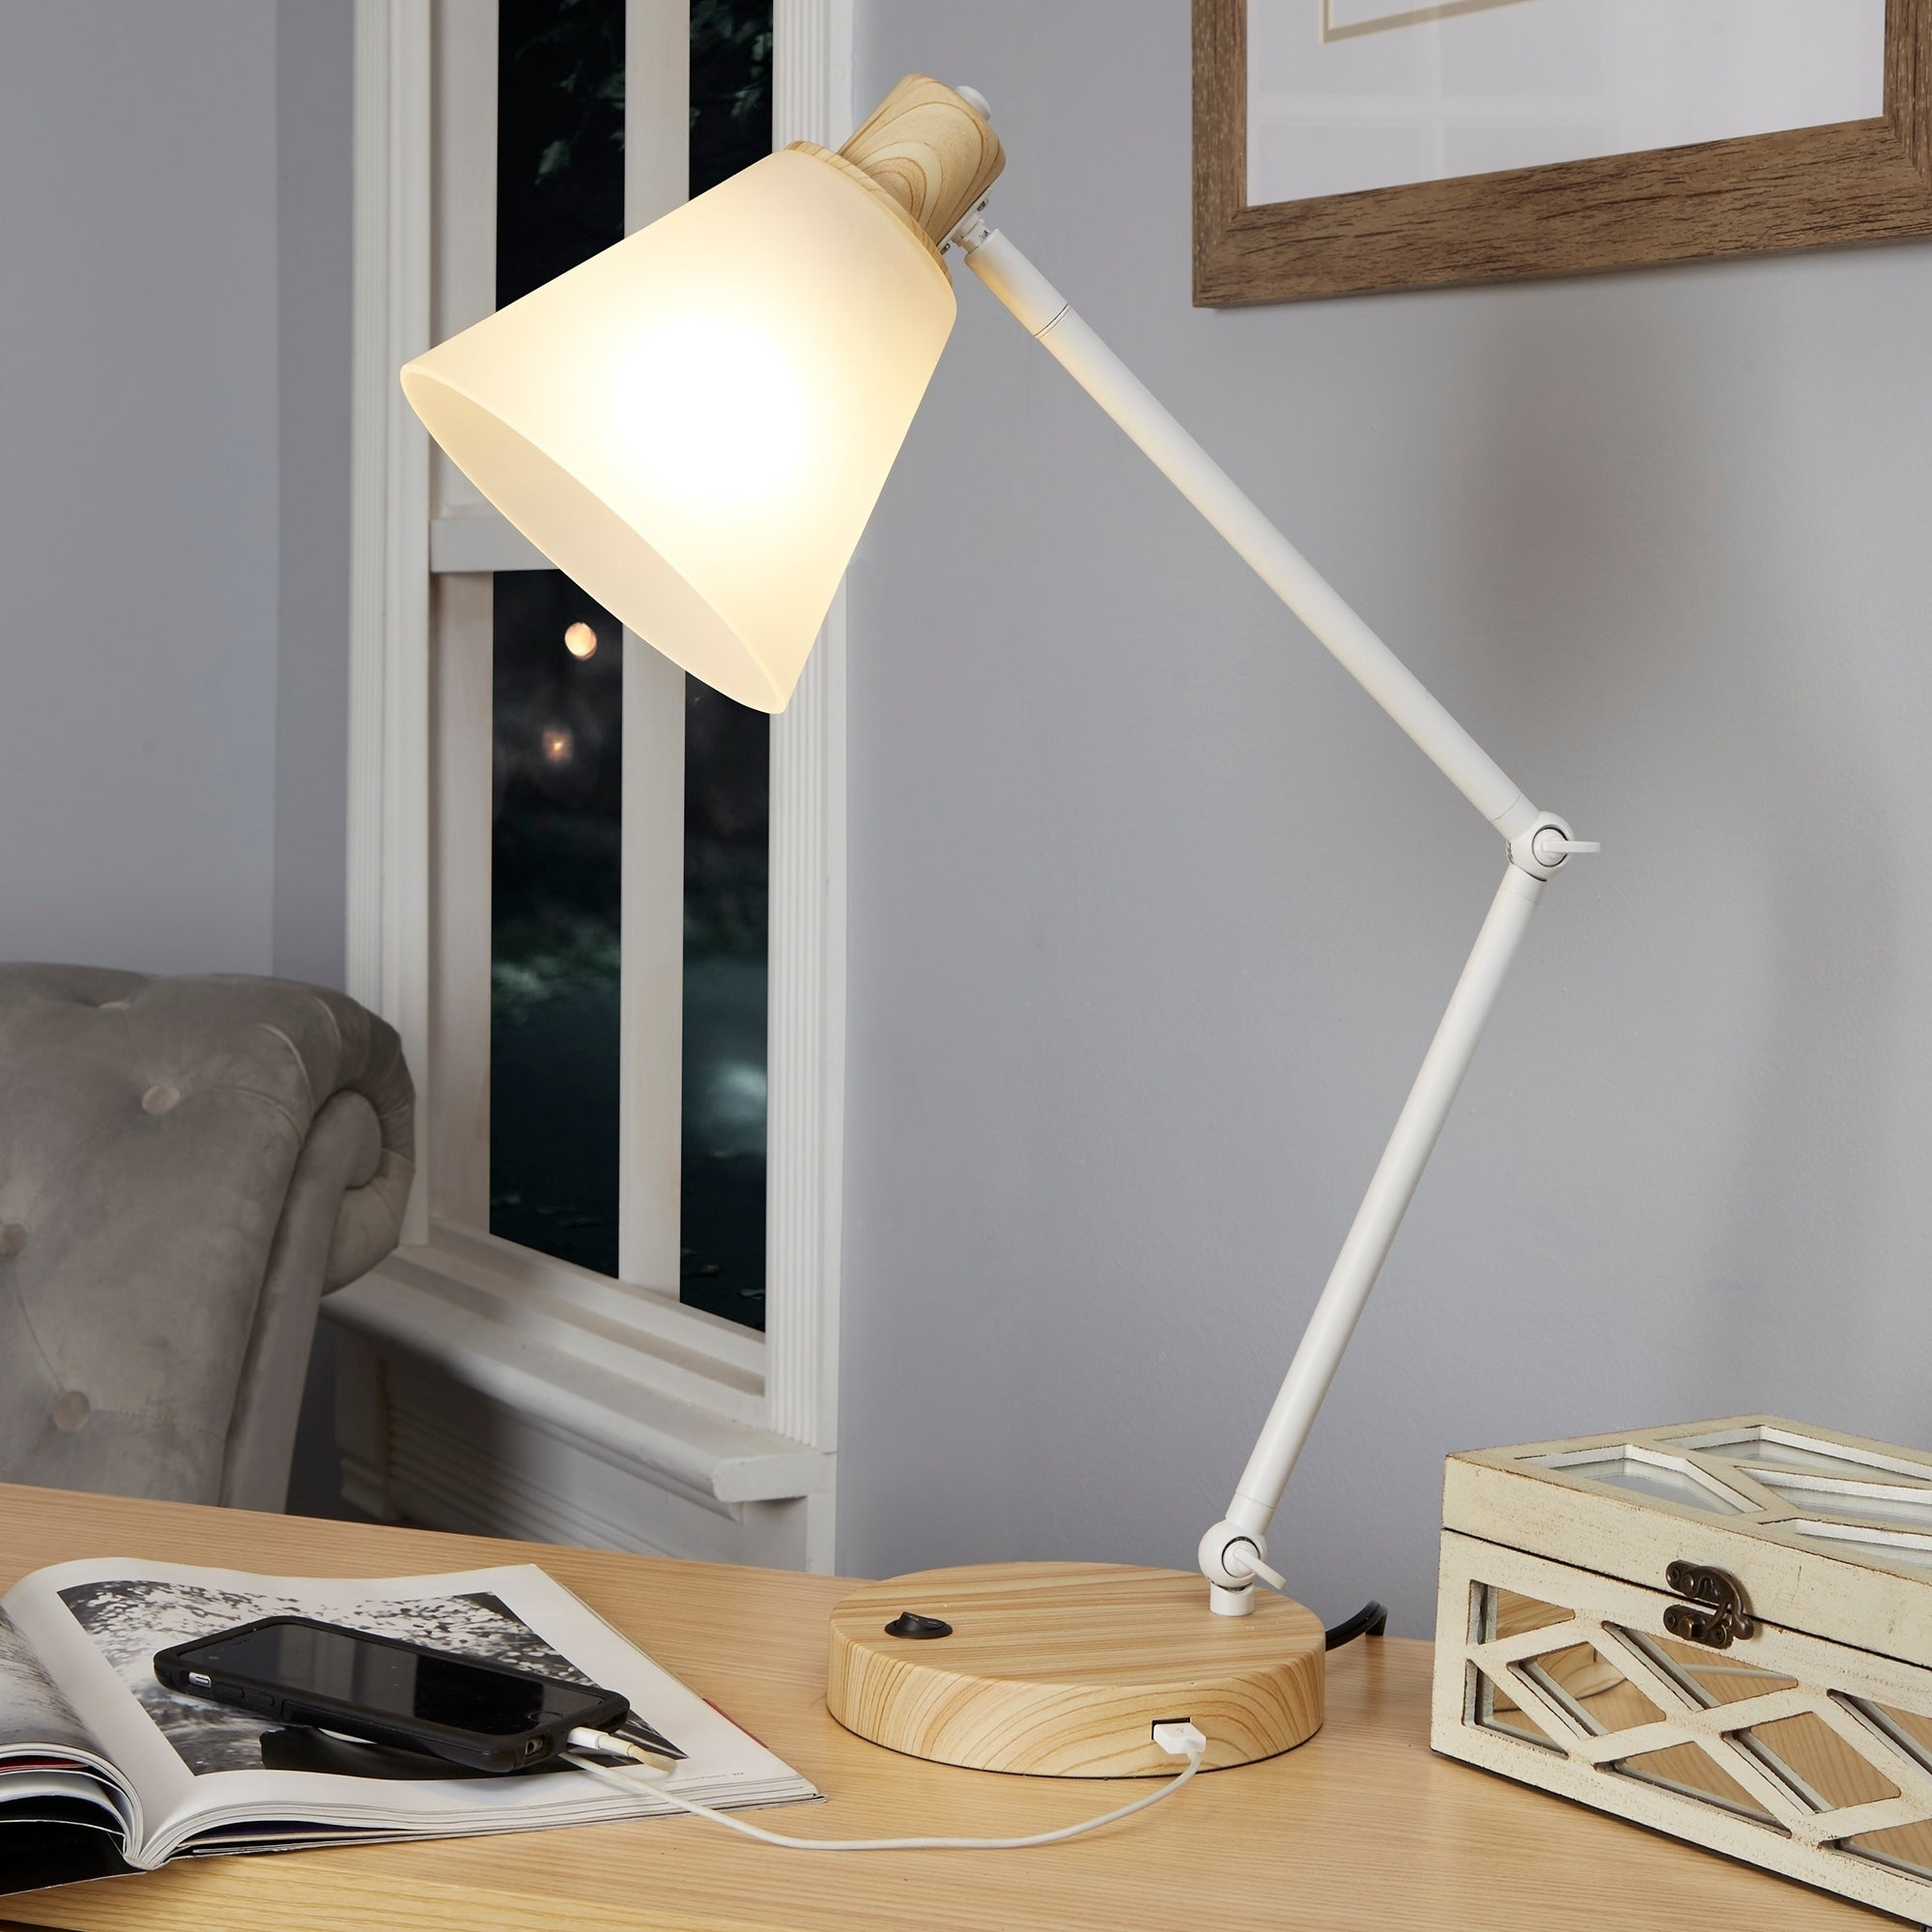 charging tar table desk elegant port of night with mah lamp modern usb aftu android inspirational light clamp